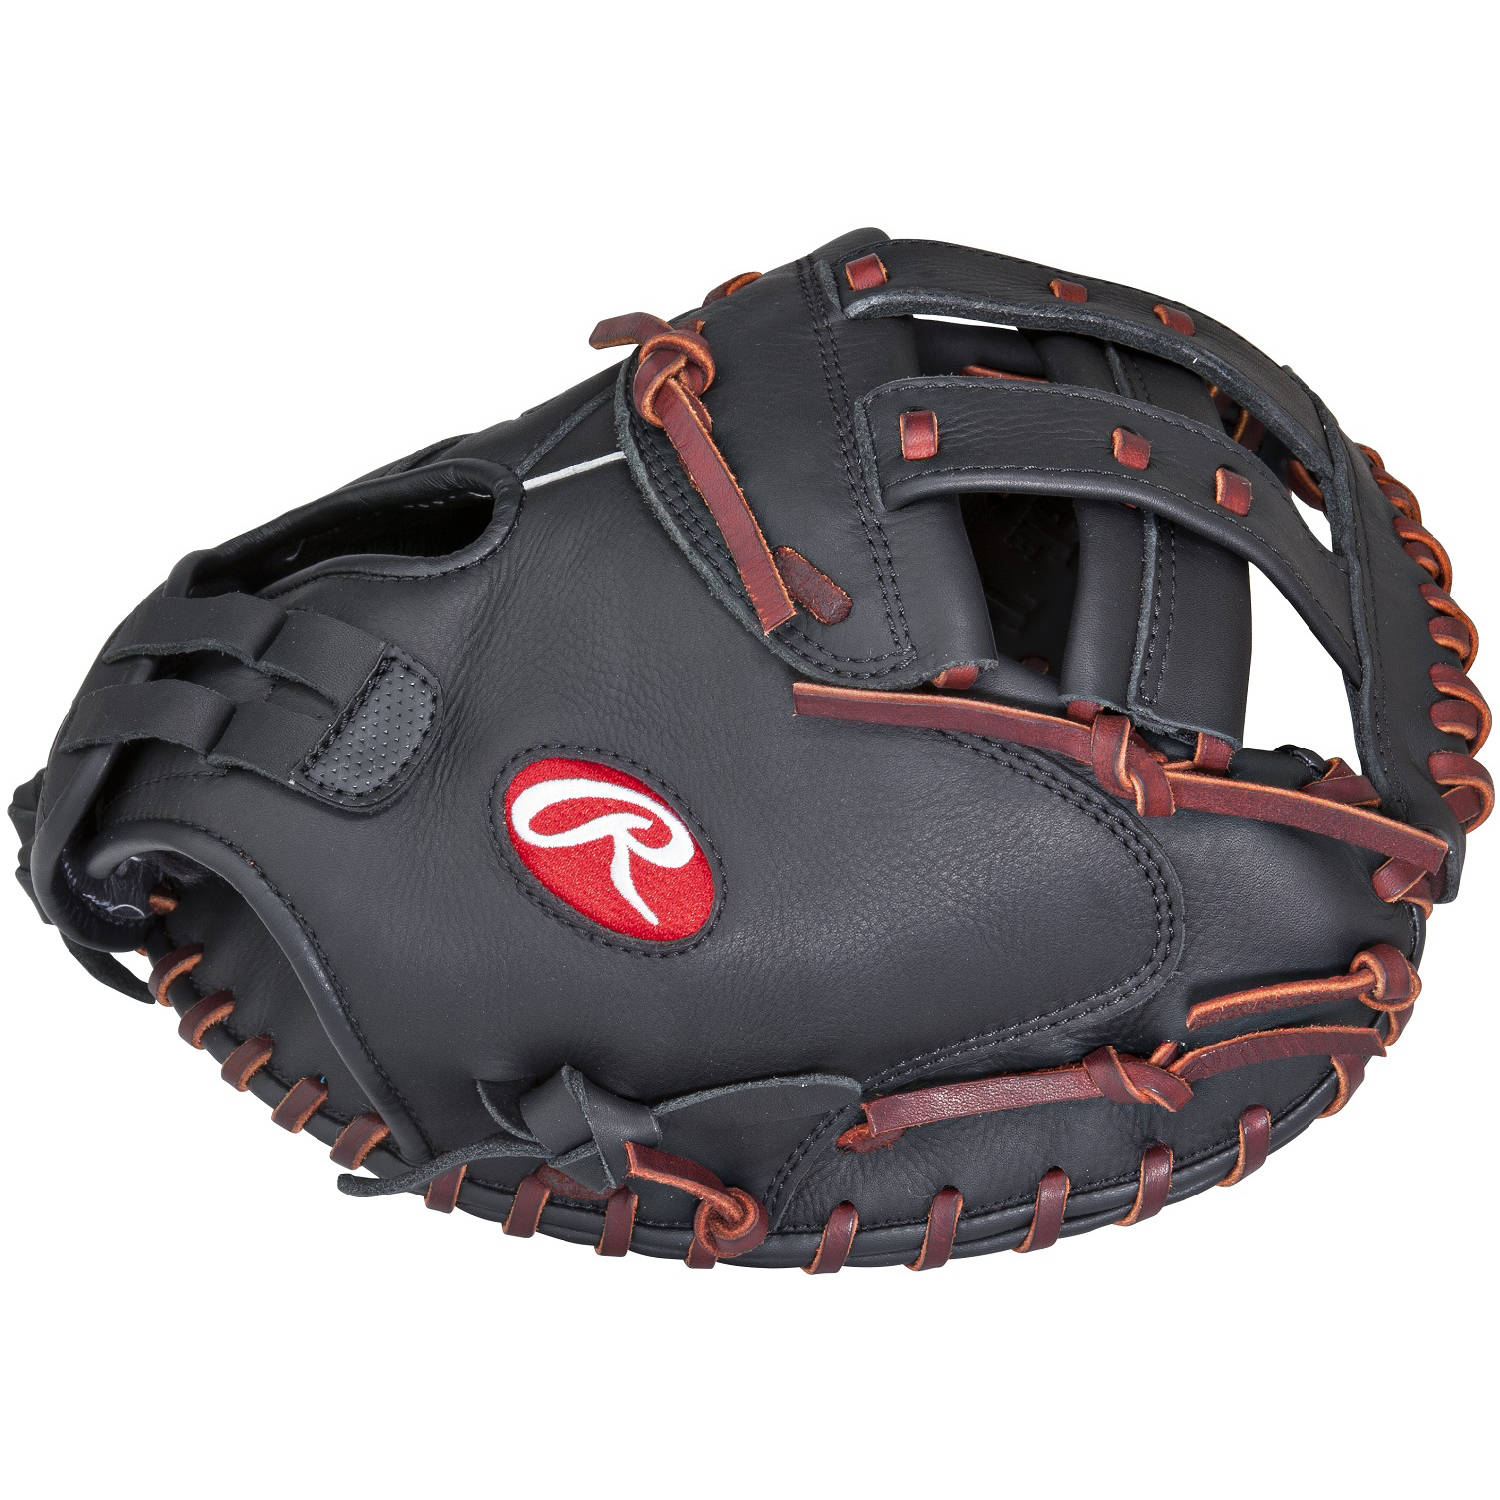 "Rawlings Gamer 33"" Catcher's Softball Mitt, Right-Handed by Rawlings"